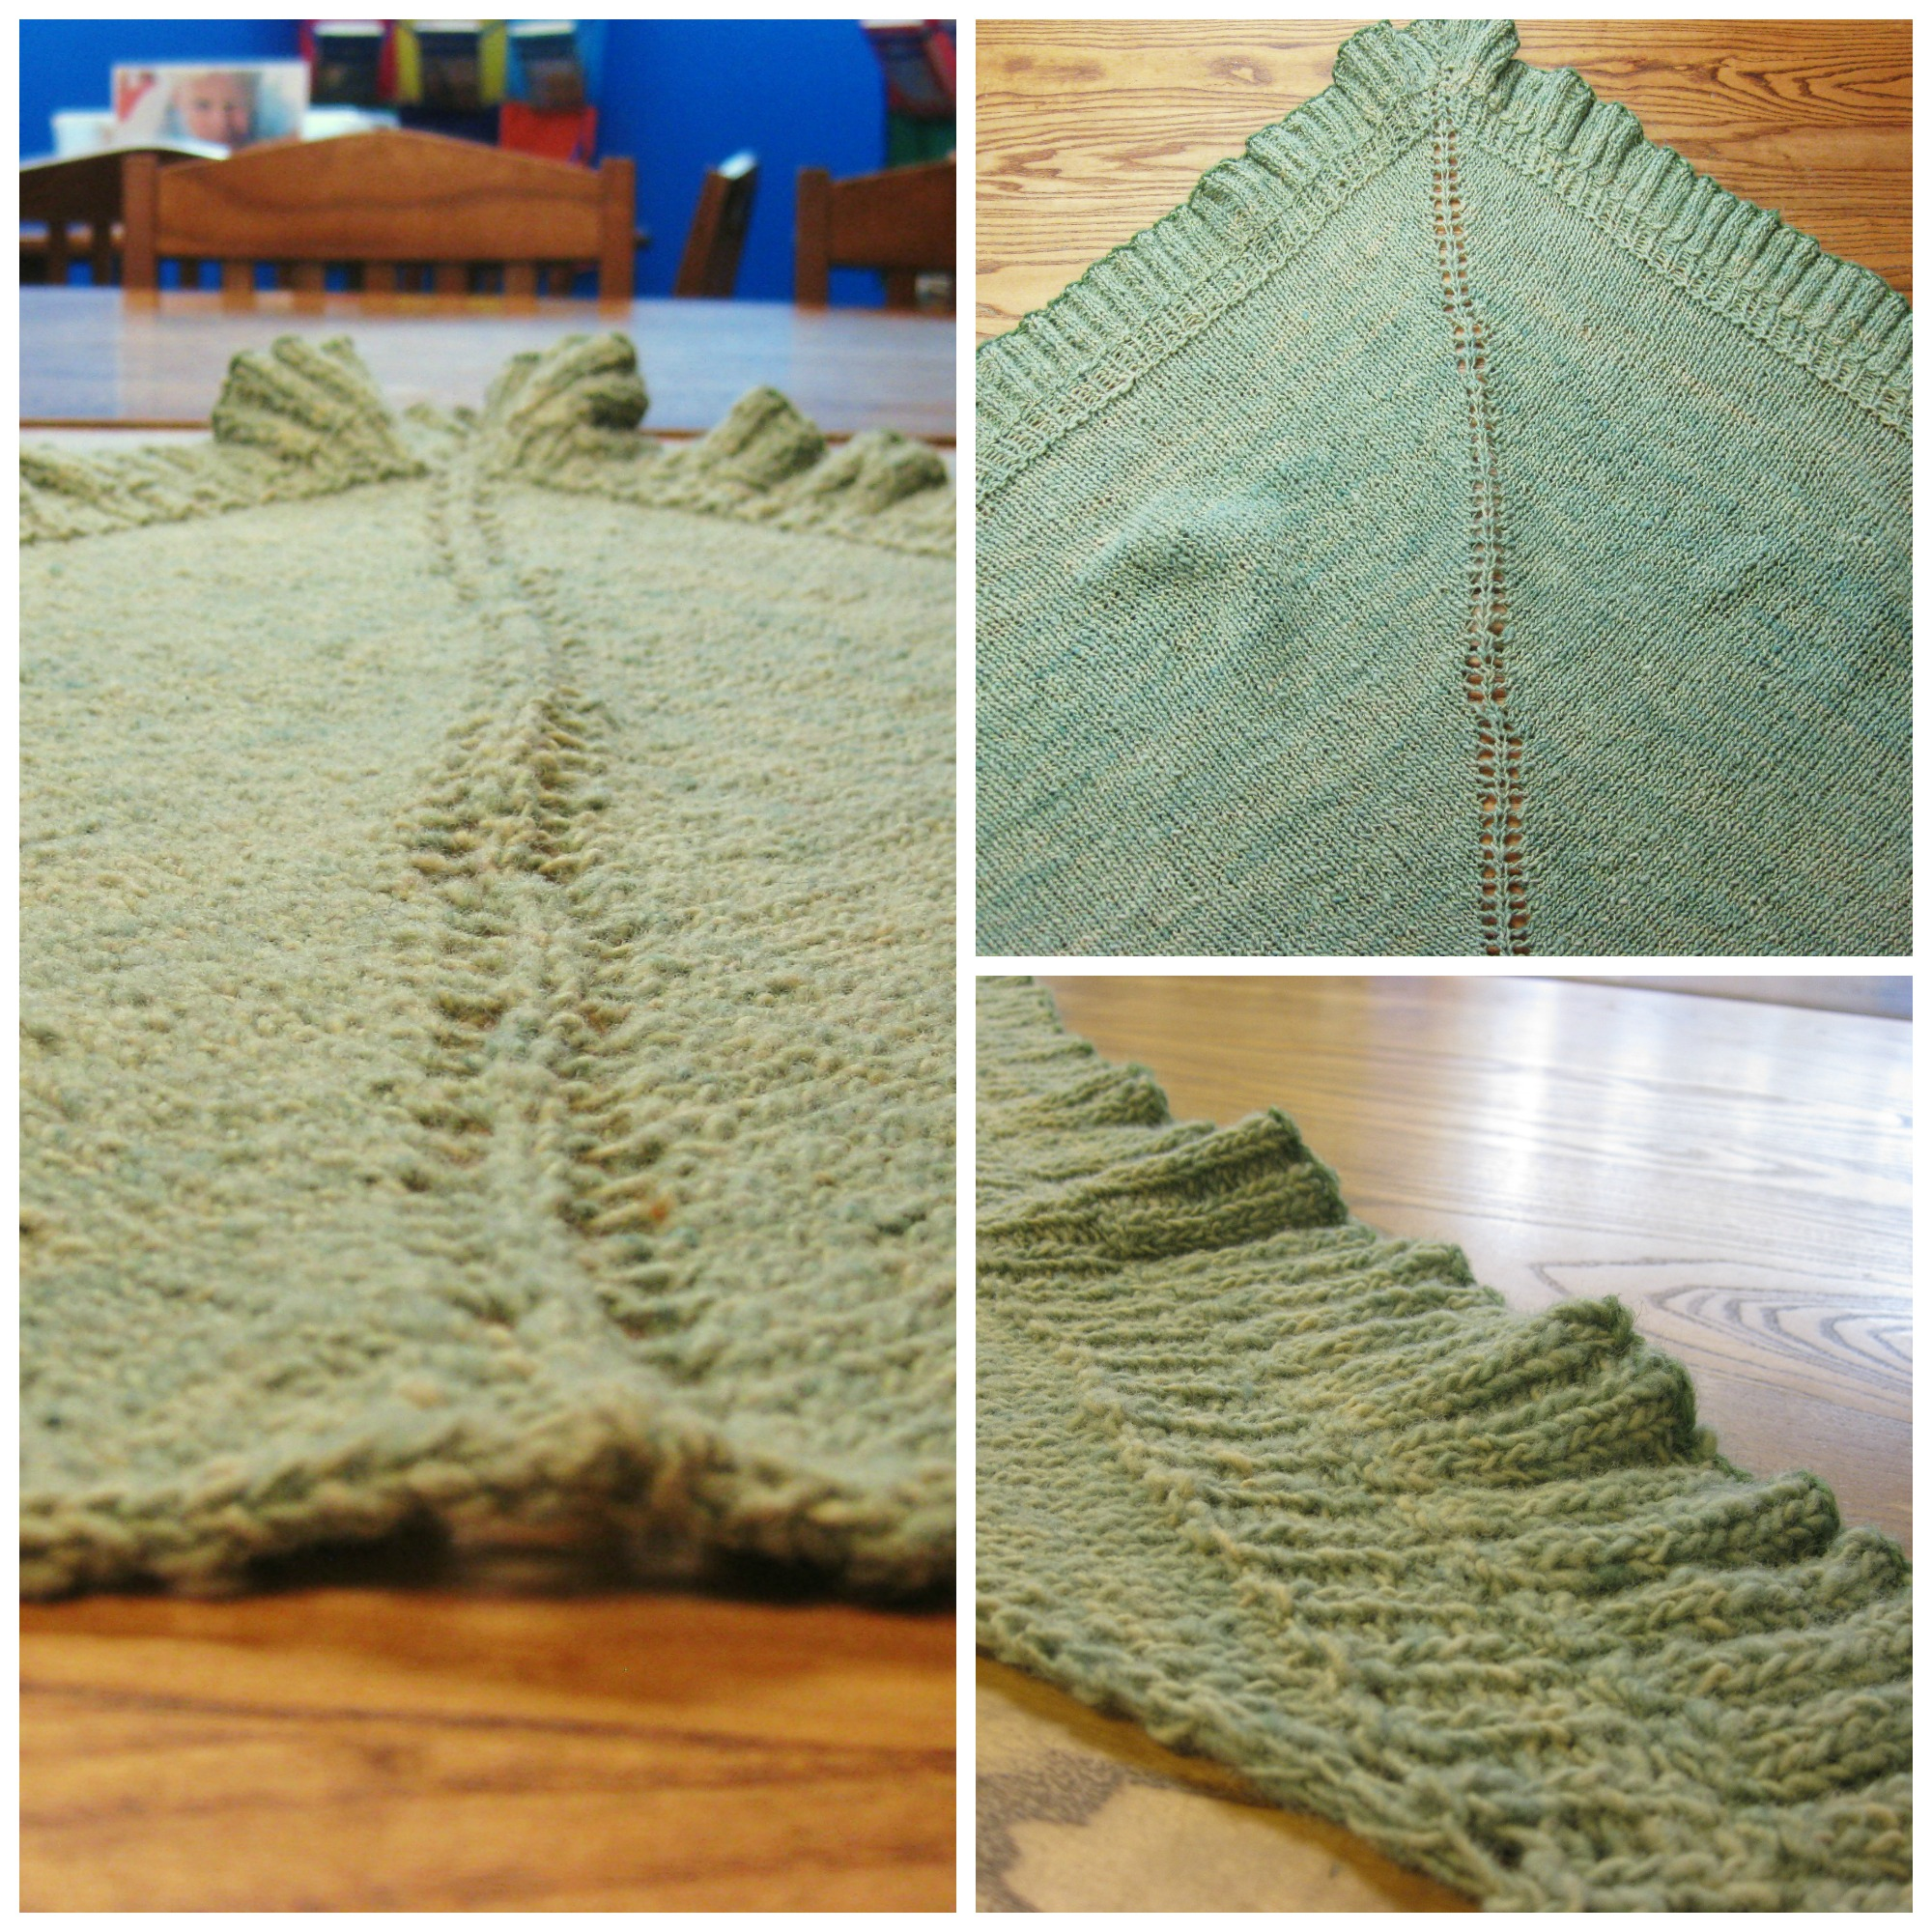 Winner Announced: The Green of Spring Shawl